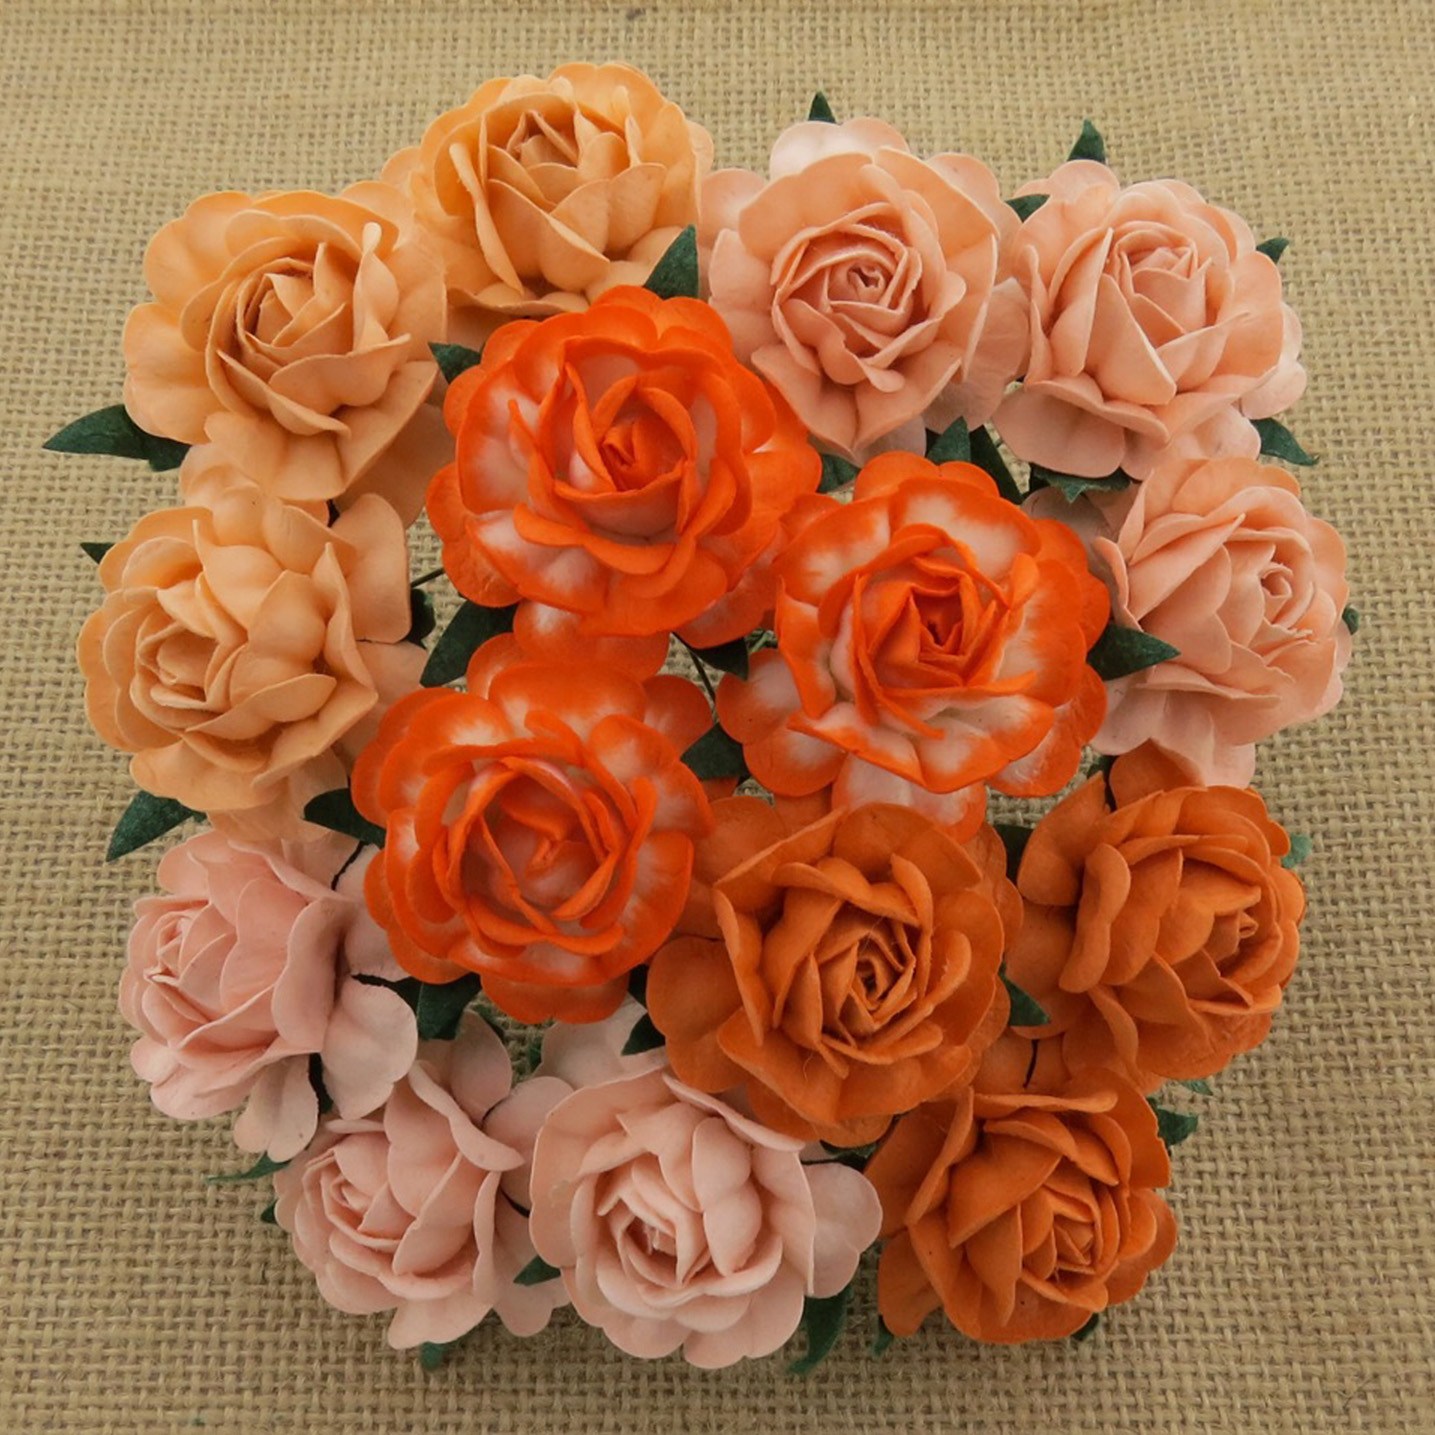 50 MIXED PEACH/ORANGE MULBERRY PAPER TEA ROSES 40mm - 5 COLOR